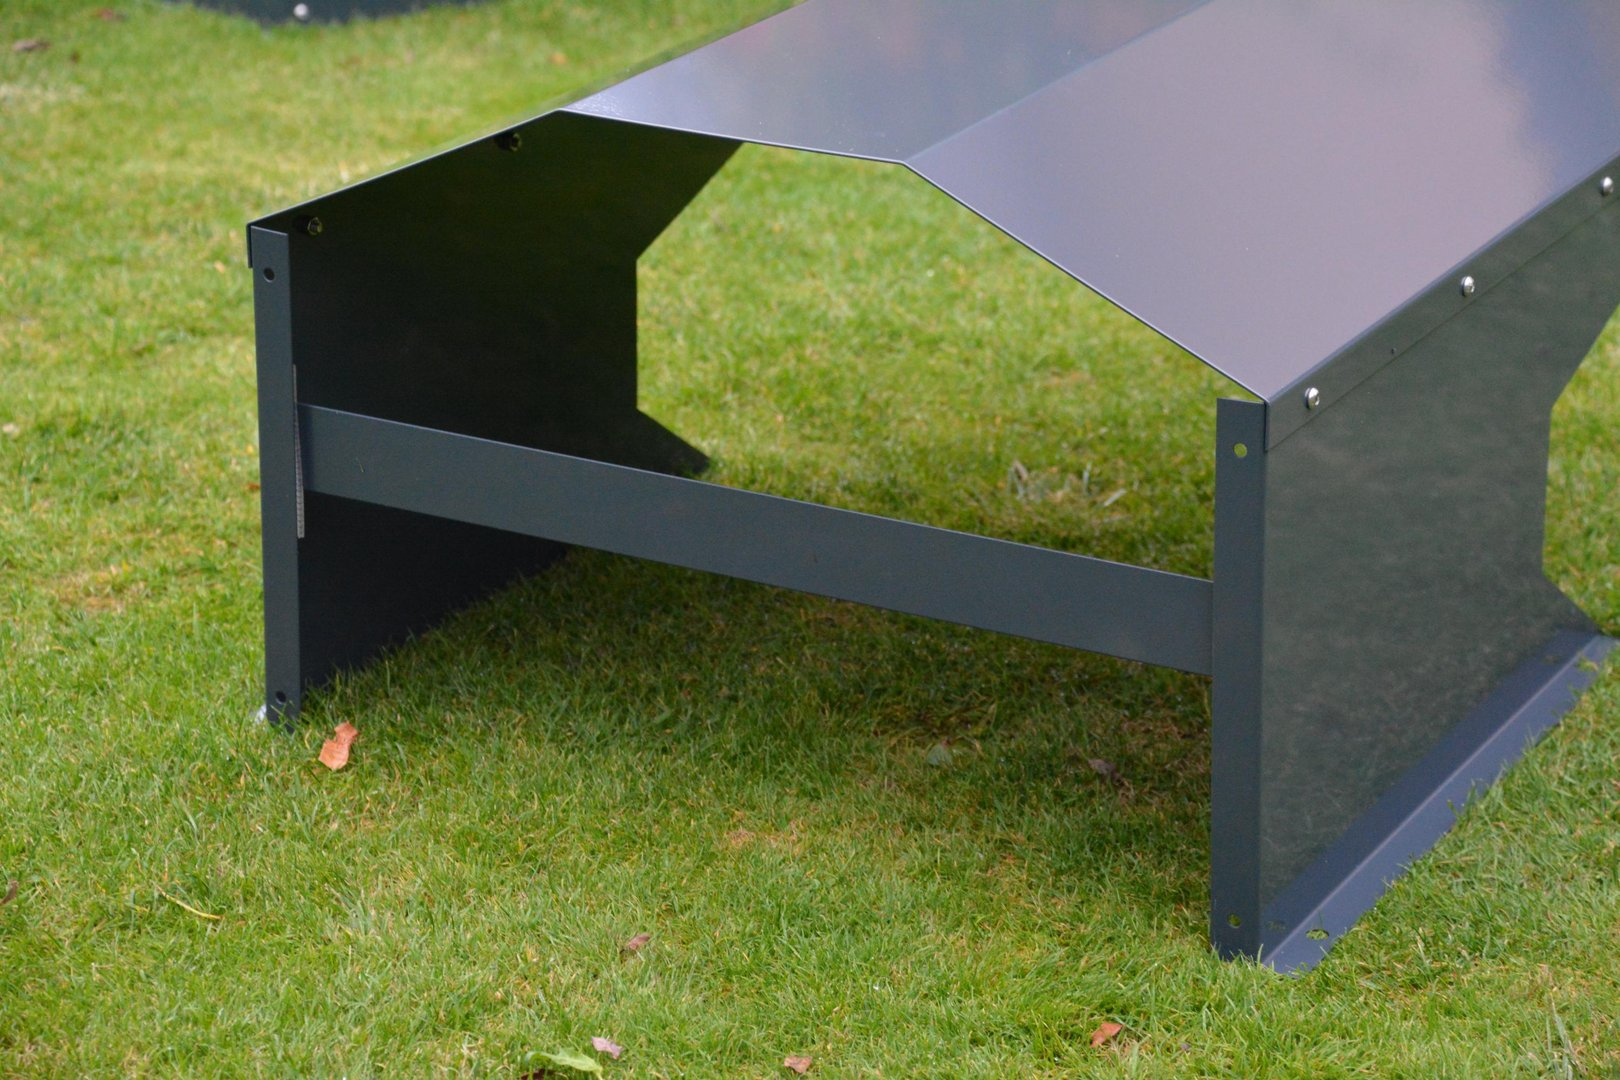 verbindungsblech f r m hroboter garage farbe nach farbkarte aus metall. Black Bedroom Furniture Sets. Home Design Ideas